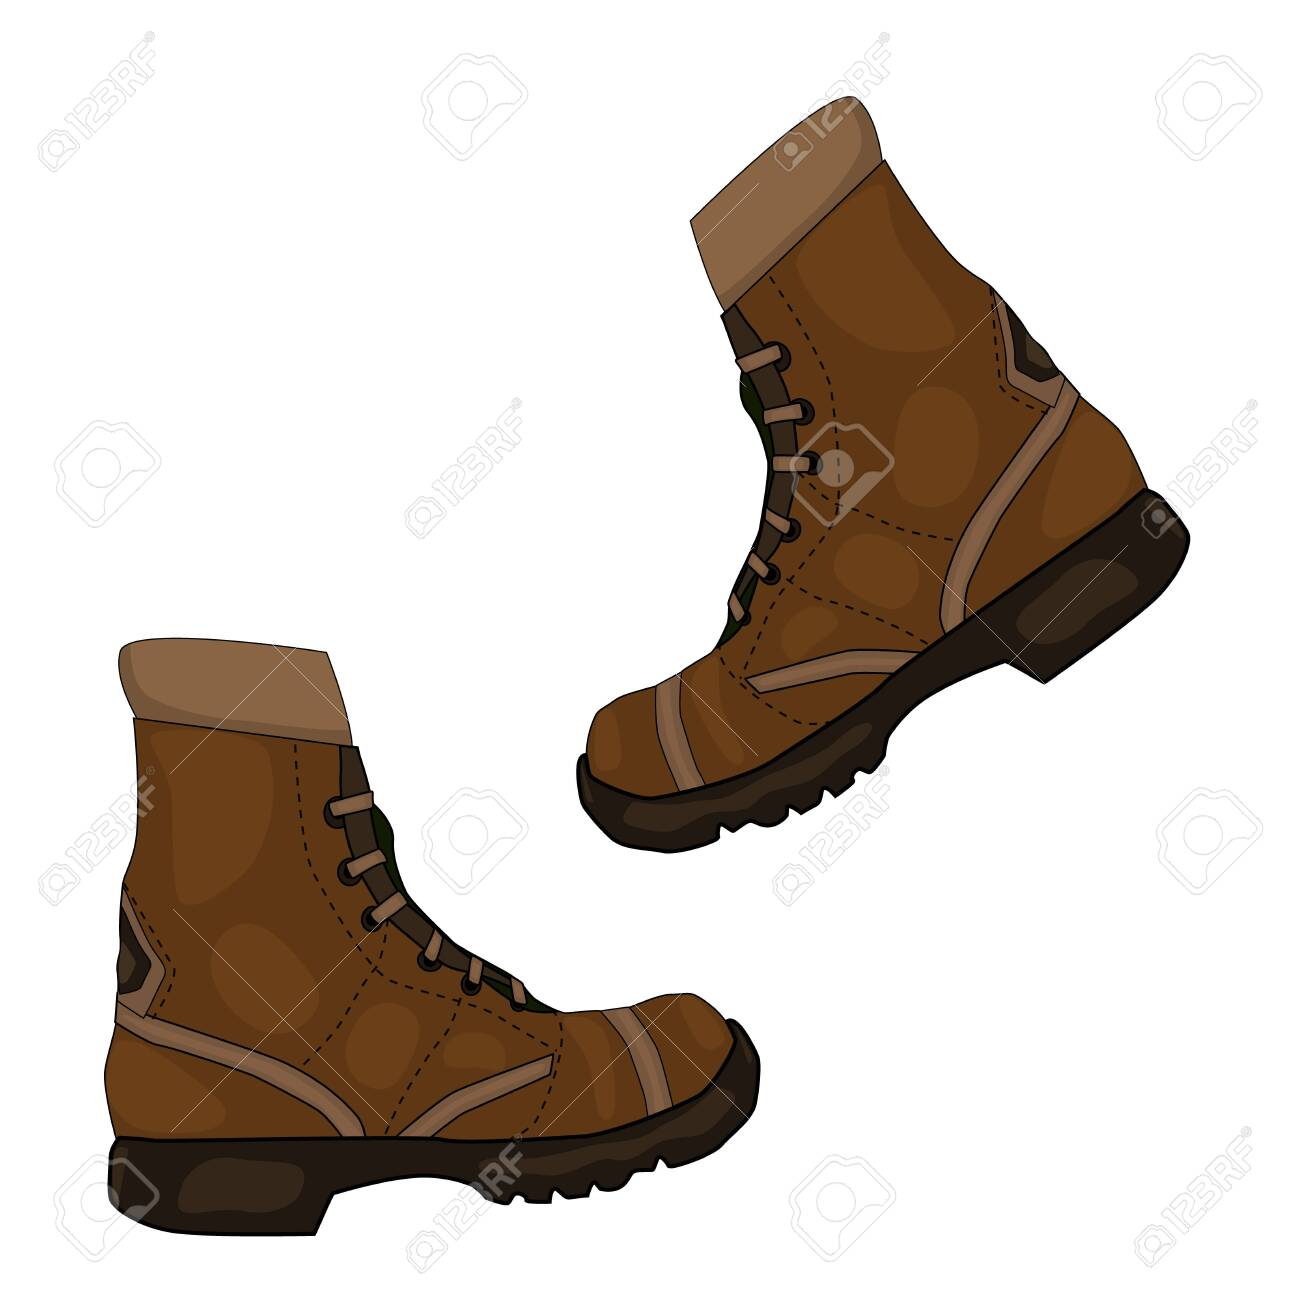 Pair of brown leather shoes isolated on white background. Camping work boots from brown leather, casual walk footwear shoe pair. Hiking boots design element. Khaki boot icon. Stock vector illustration - 146507429